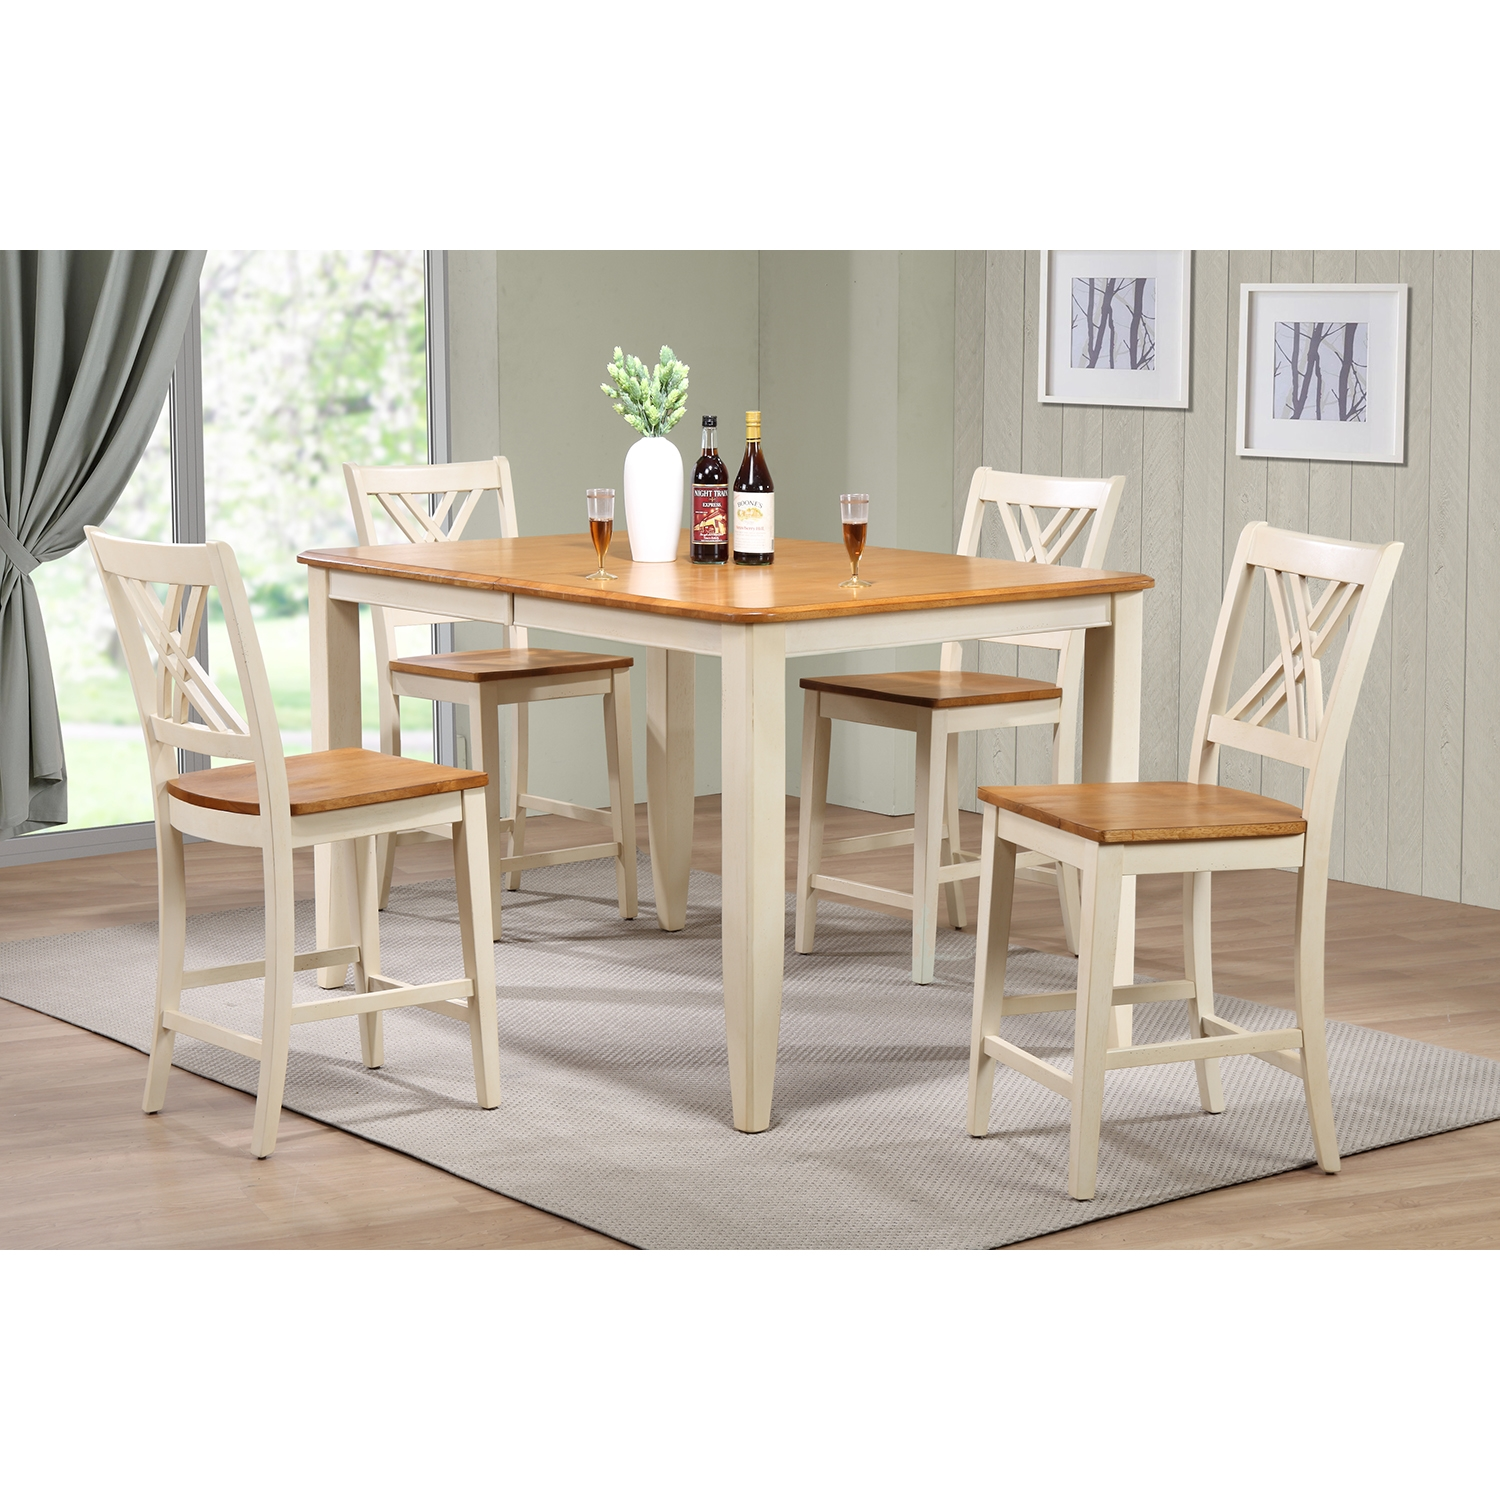 5-Piece Counter Dining Set - Wood Seat, Double X-Back, Caramel and Biscotti - ICON-RT67-CT-CO-STC56-CL-BI